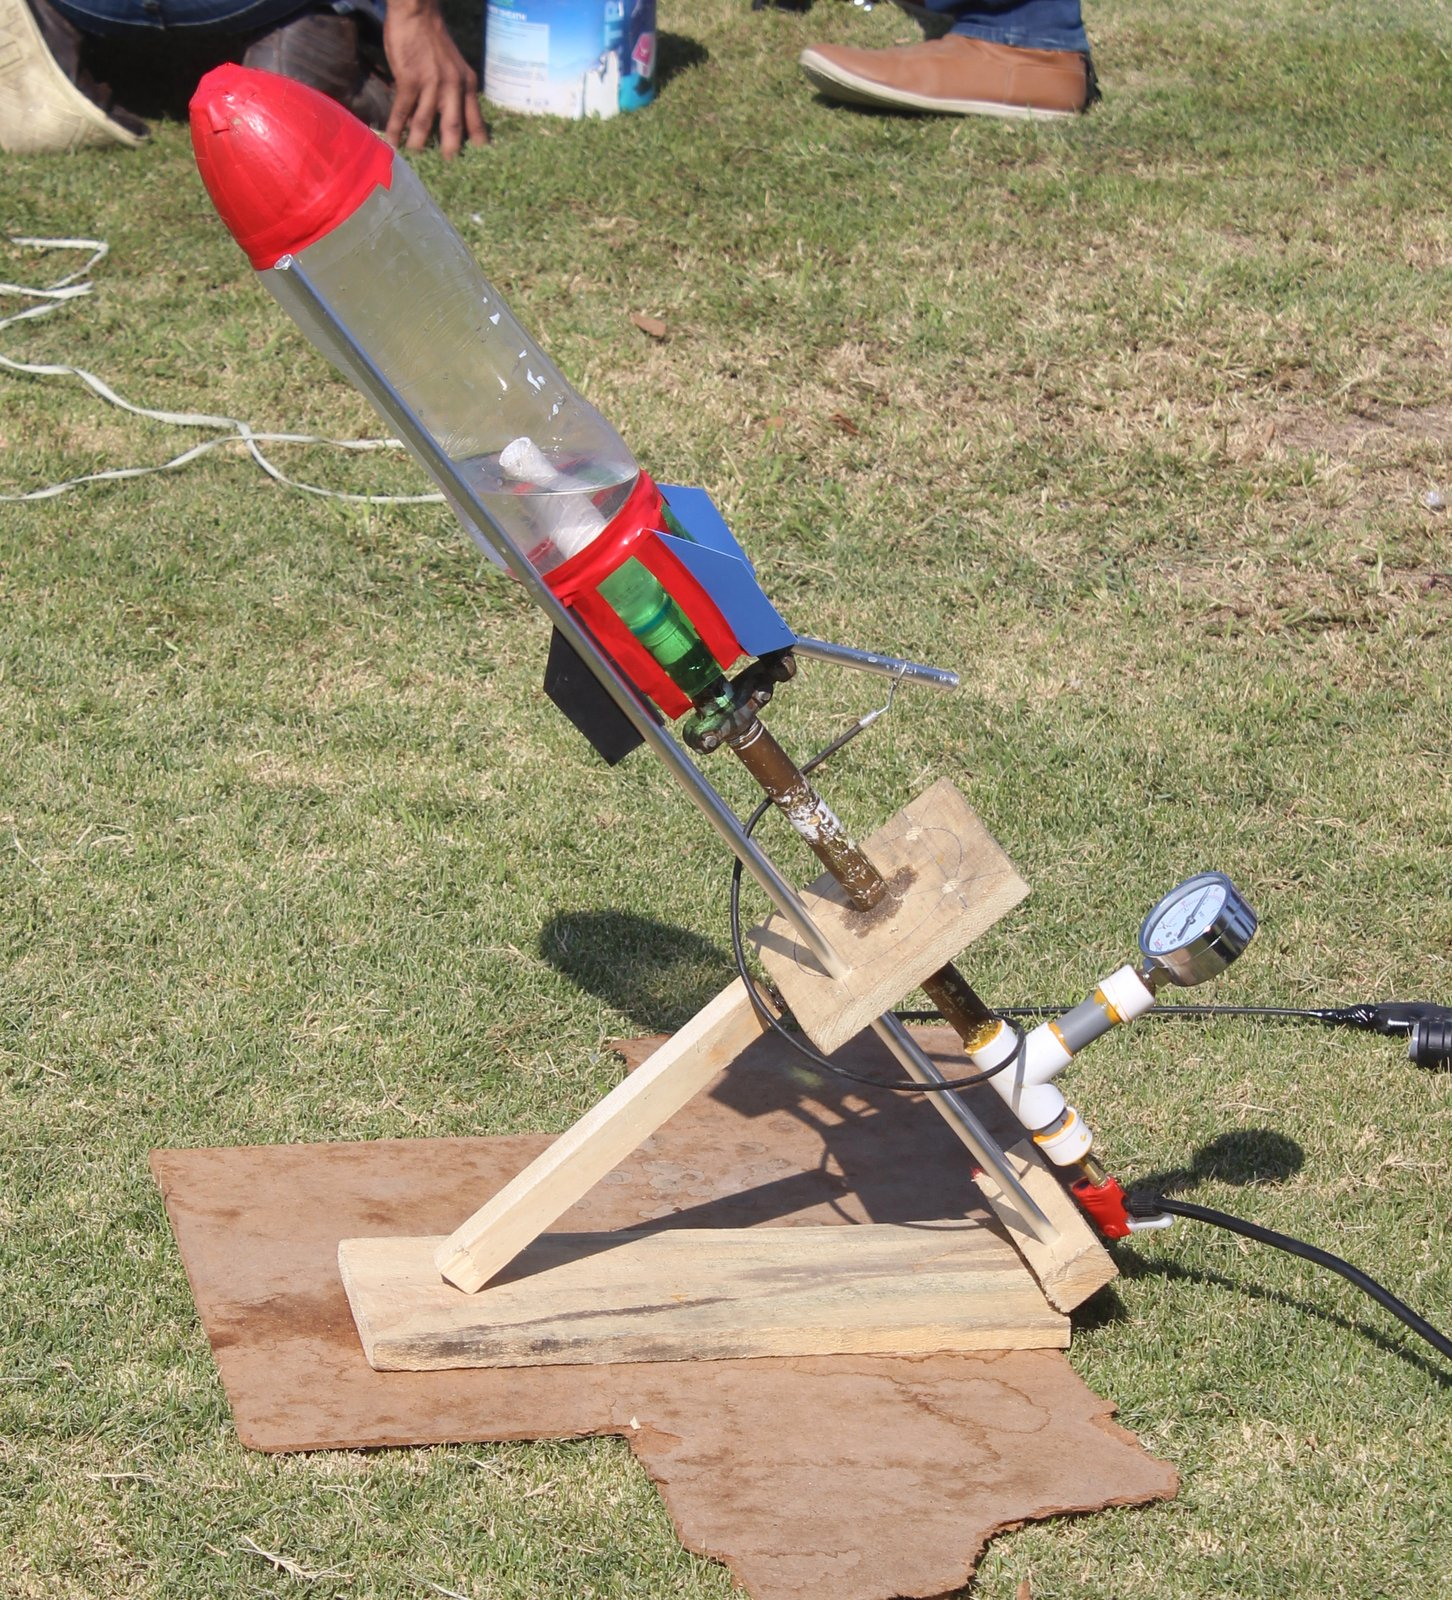 Soda Bottle Water Rocket: Soda Bottle Water Rocket Launcher Online ScienceStore.pk